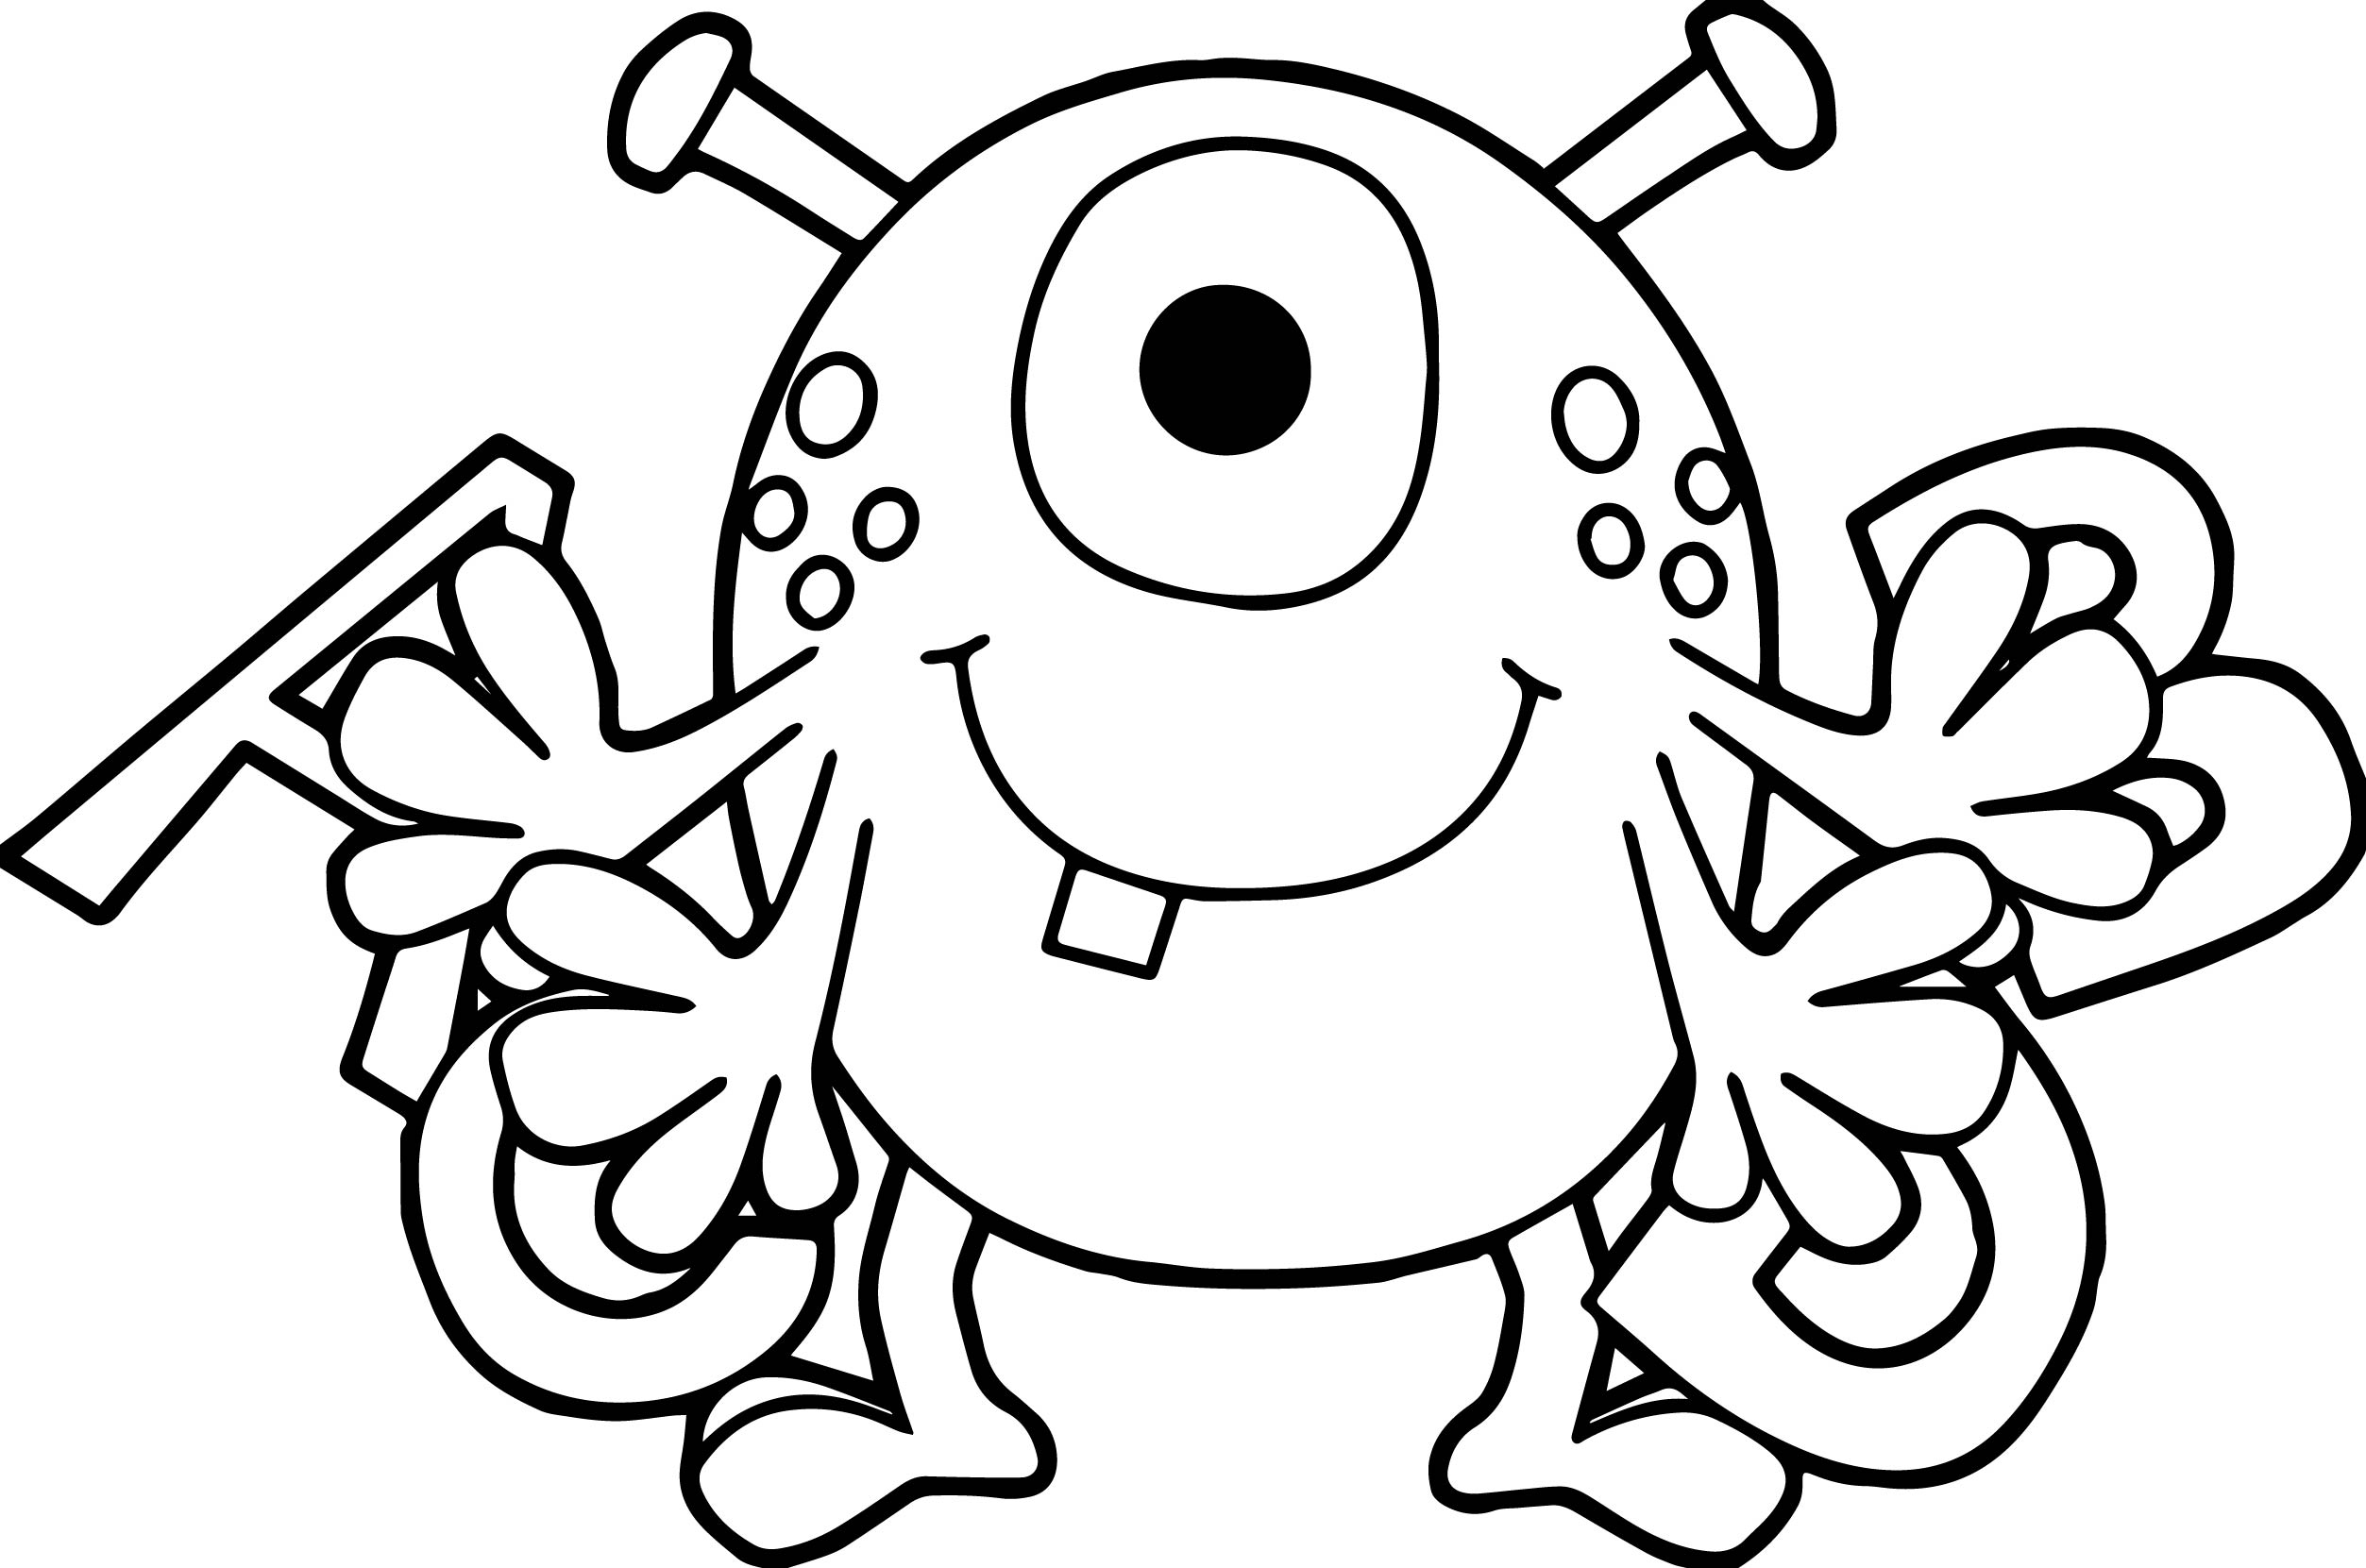 Cartoon Alien Spider A B C Alphabet Coloring Page